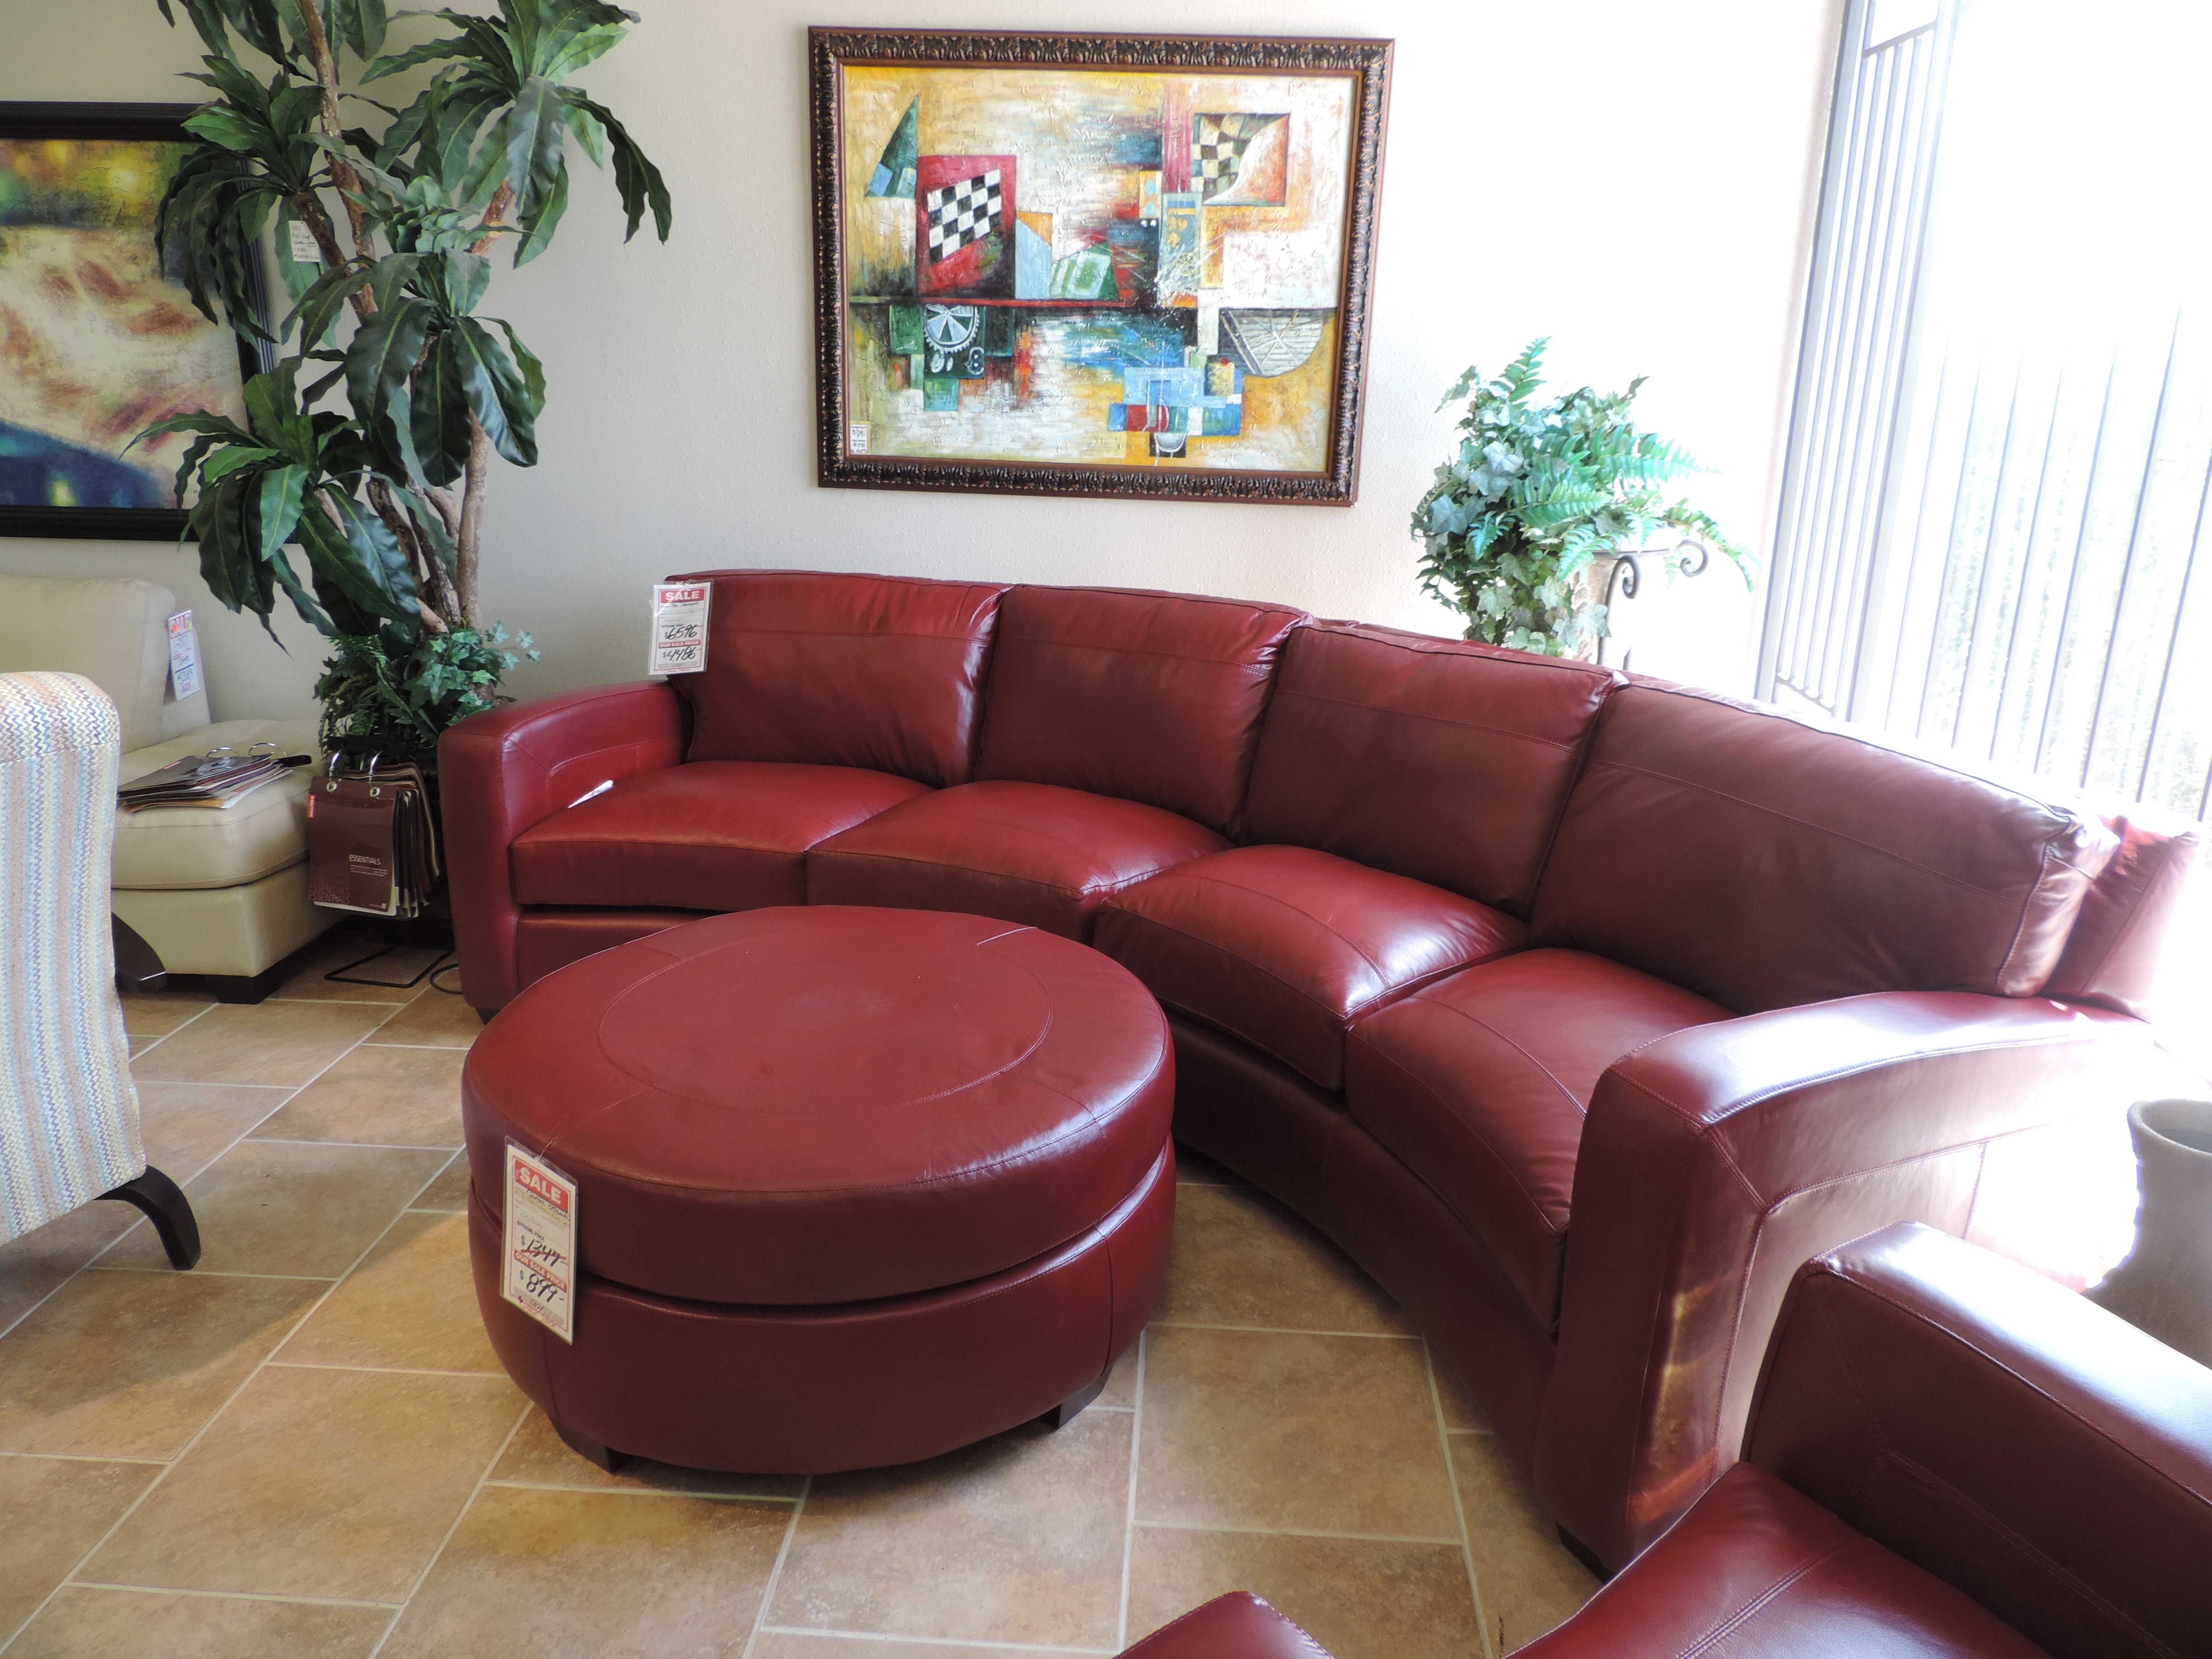 Red Leather Sectional Sofa With Matching Chair And Ottoman. | Home throughout Red Leather Sectionals With Ottoman (Image 12 of 15)